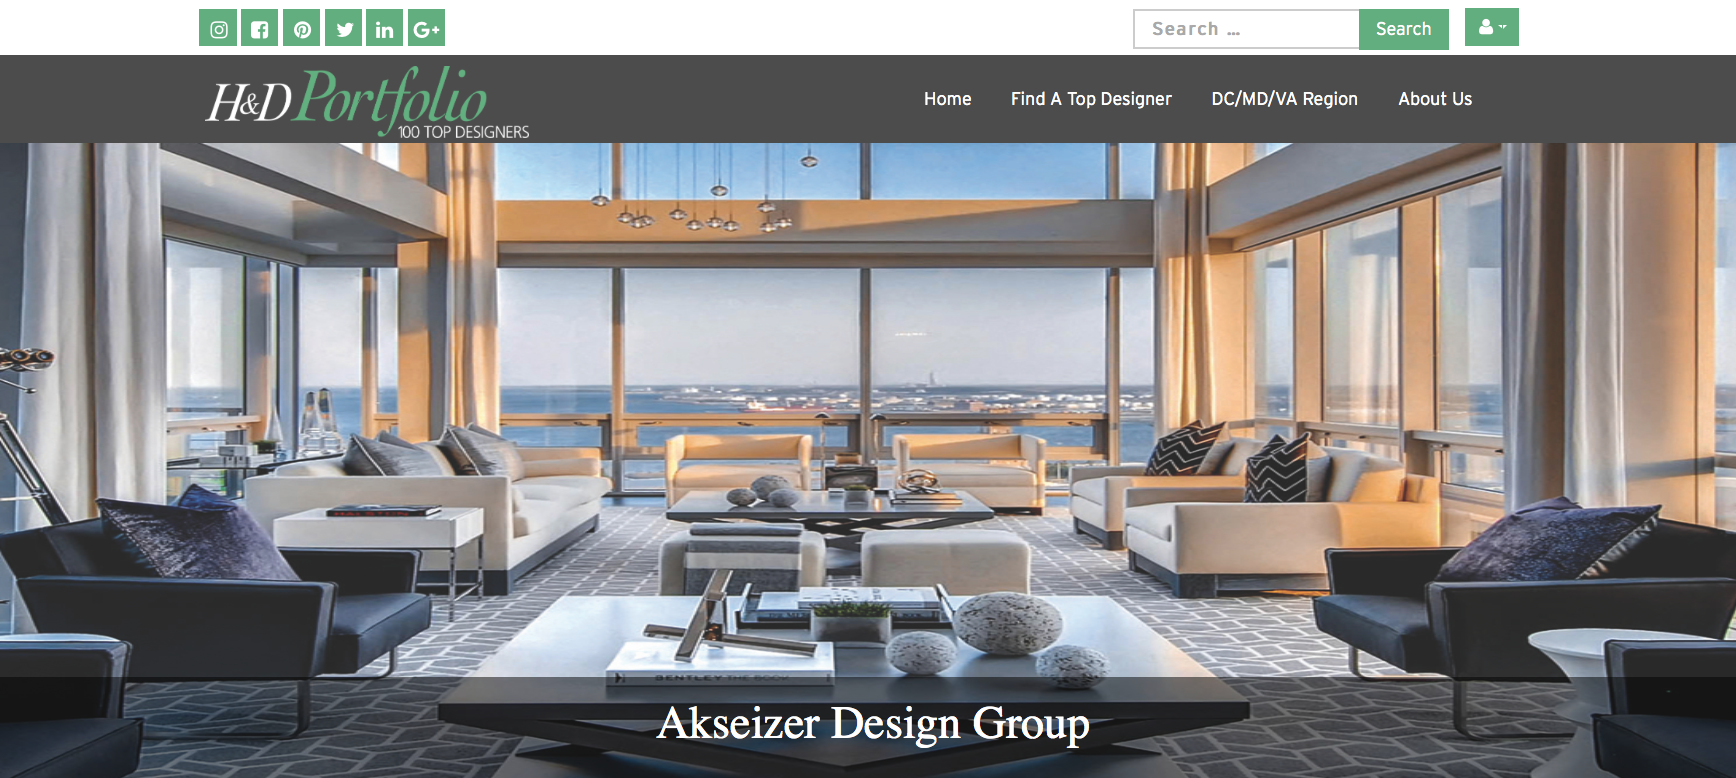 Adg Featured As One Of H D Portfolio S Top Interior Design Firms Adg Akseizer Design Group Interiors Architecture Branding Dc Ny